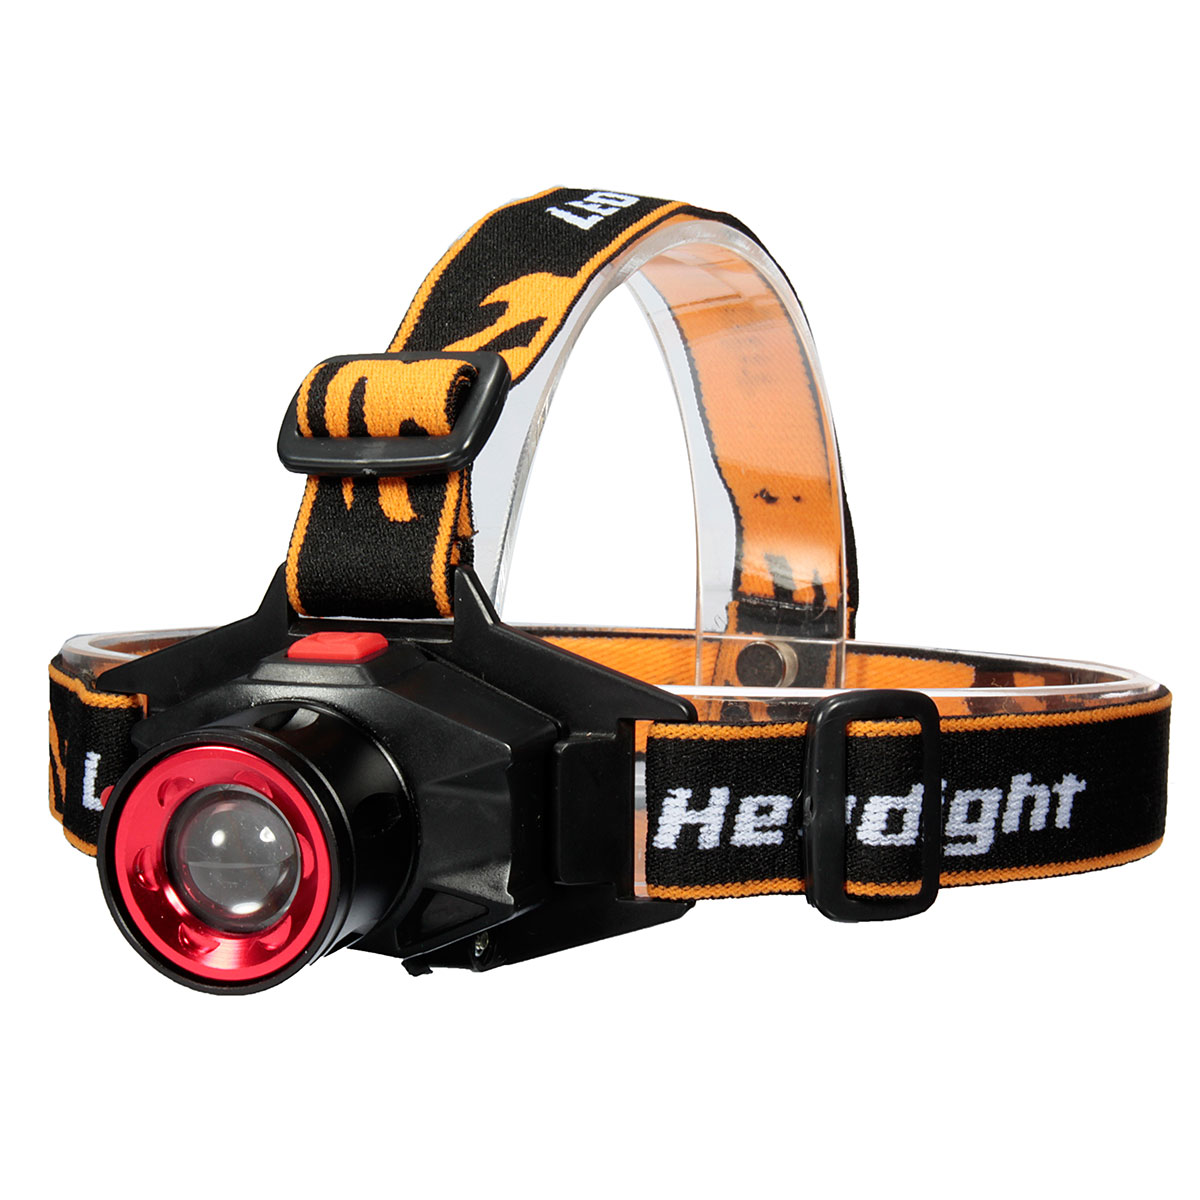 XANES 600LM T6 3 LED Zoomable Headlight Head Torch Head